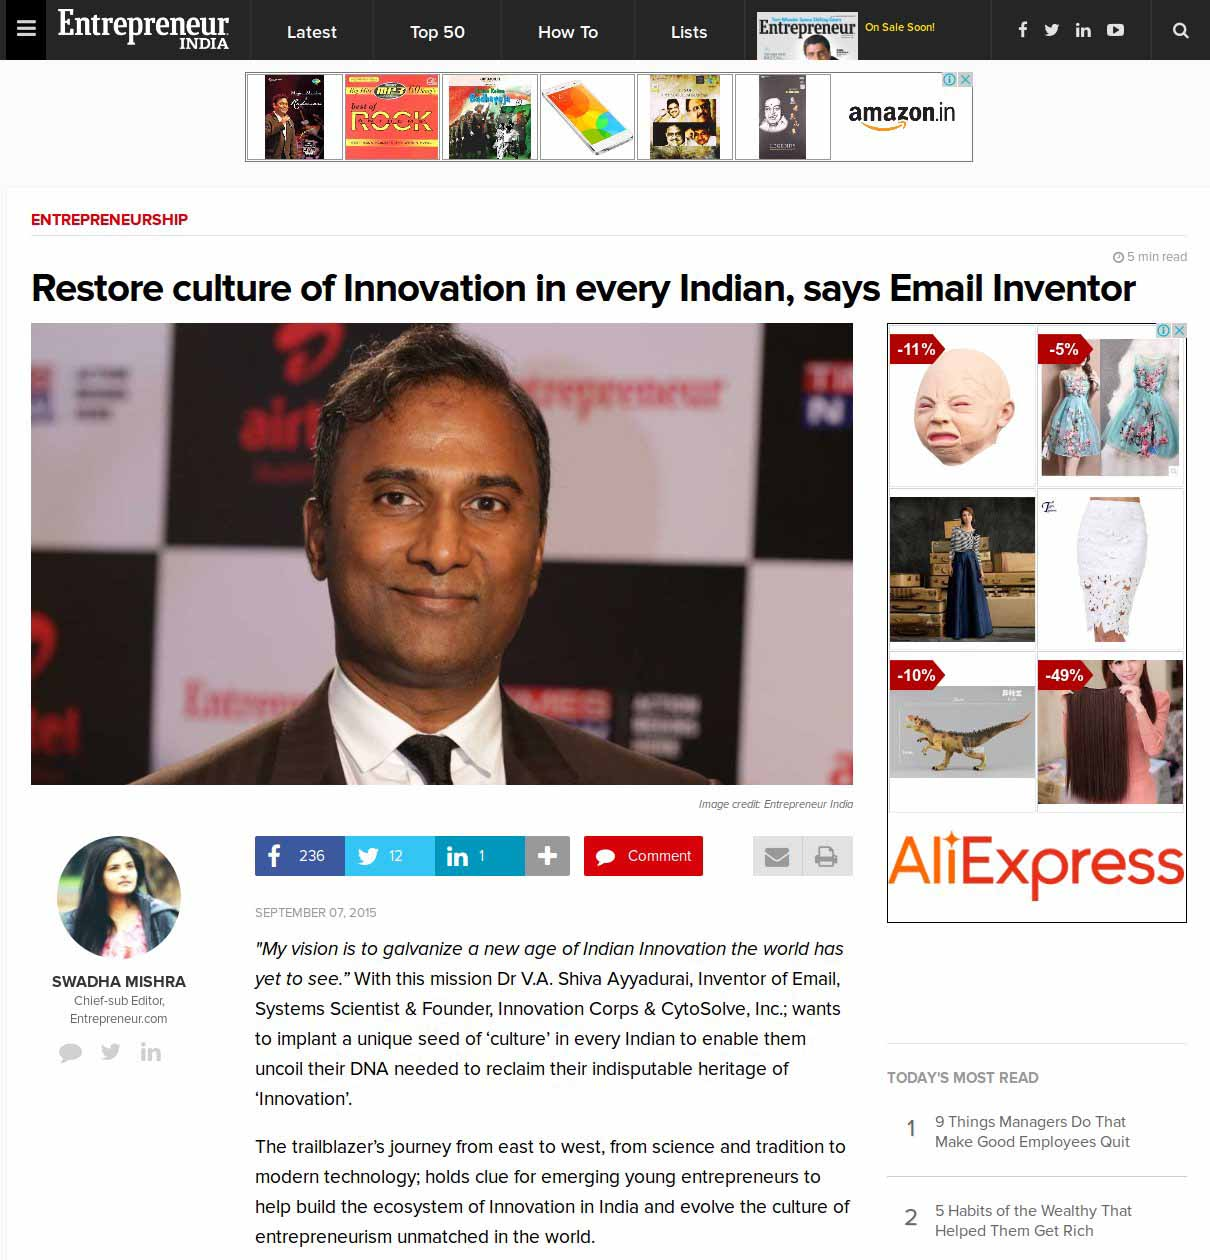 Restore Culture Of Innovation In Every Indian, Says Email Inventor